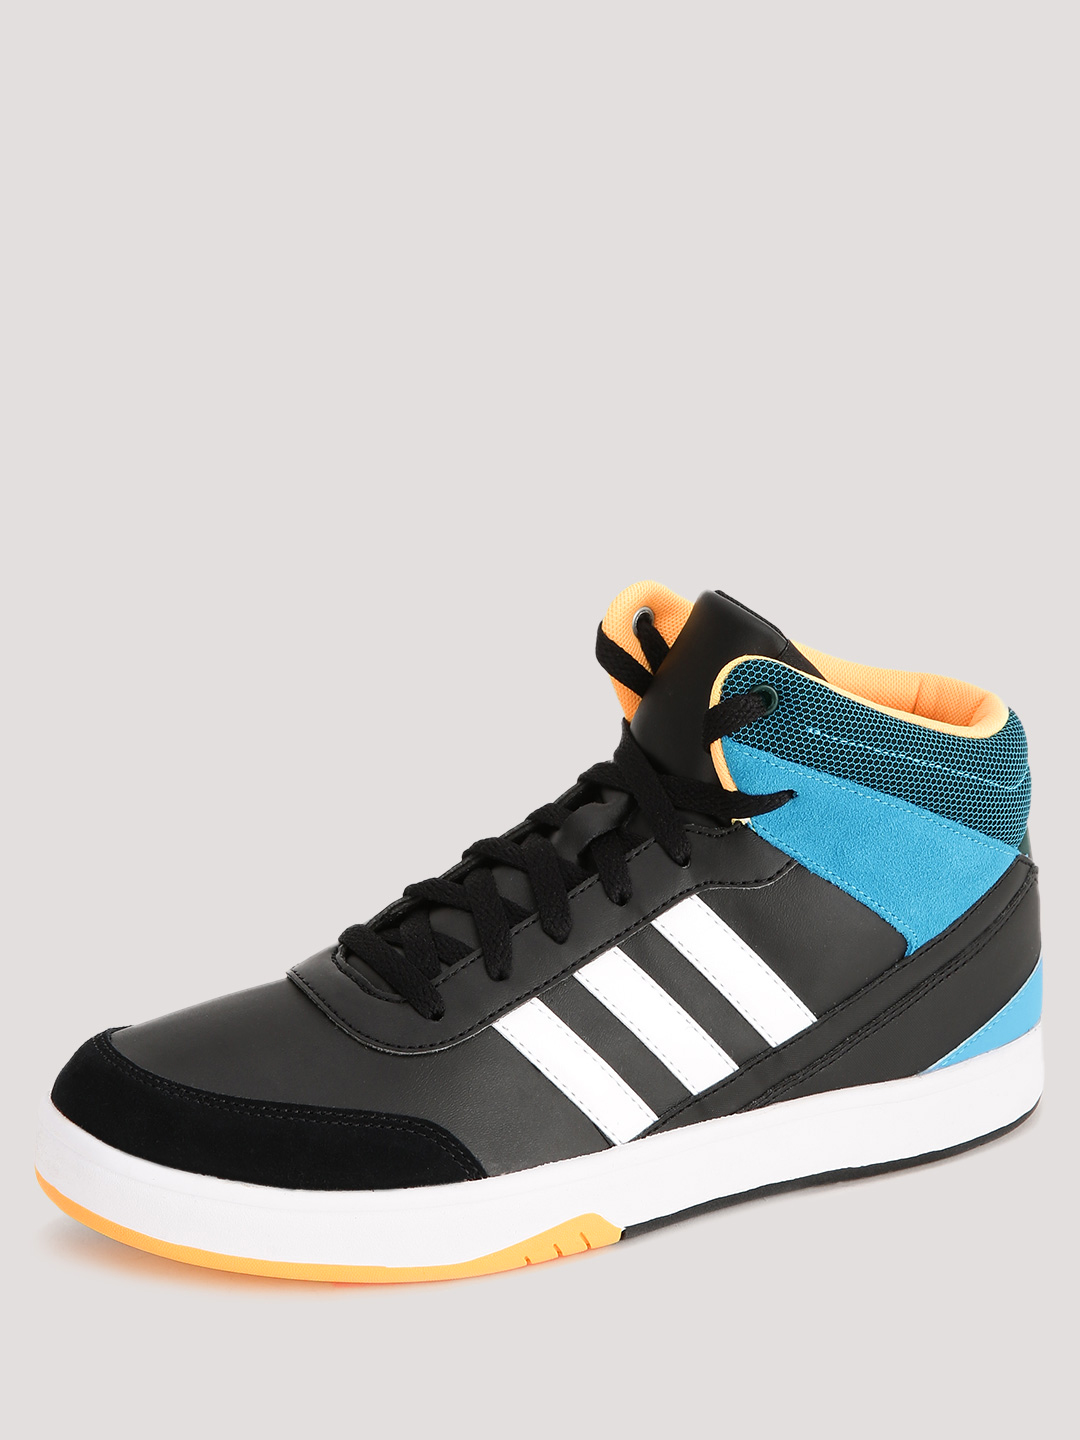 Adidas Neo Black/White/Gold/Blue Flip Mid Low Trainers 1